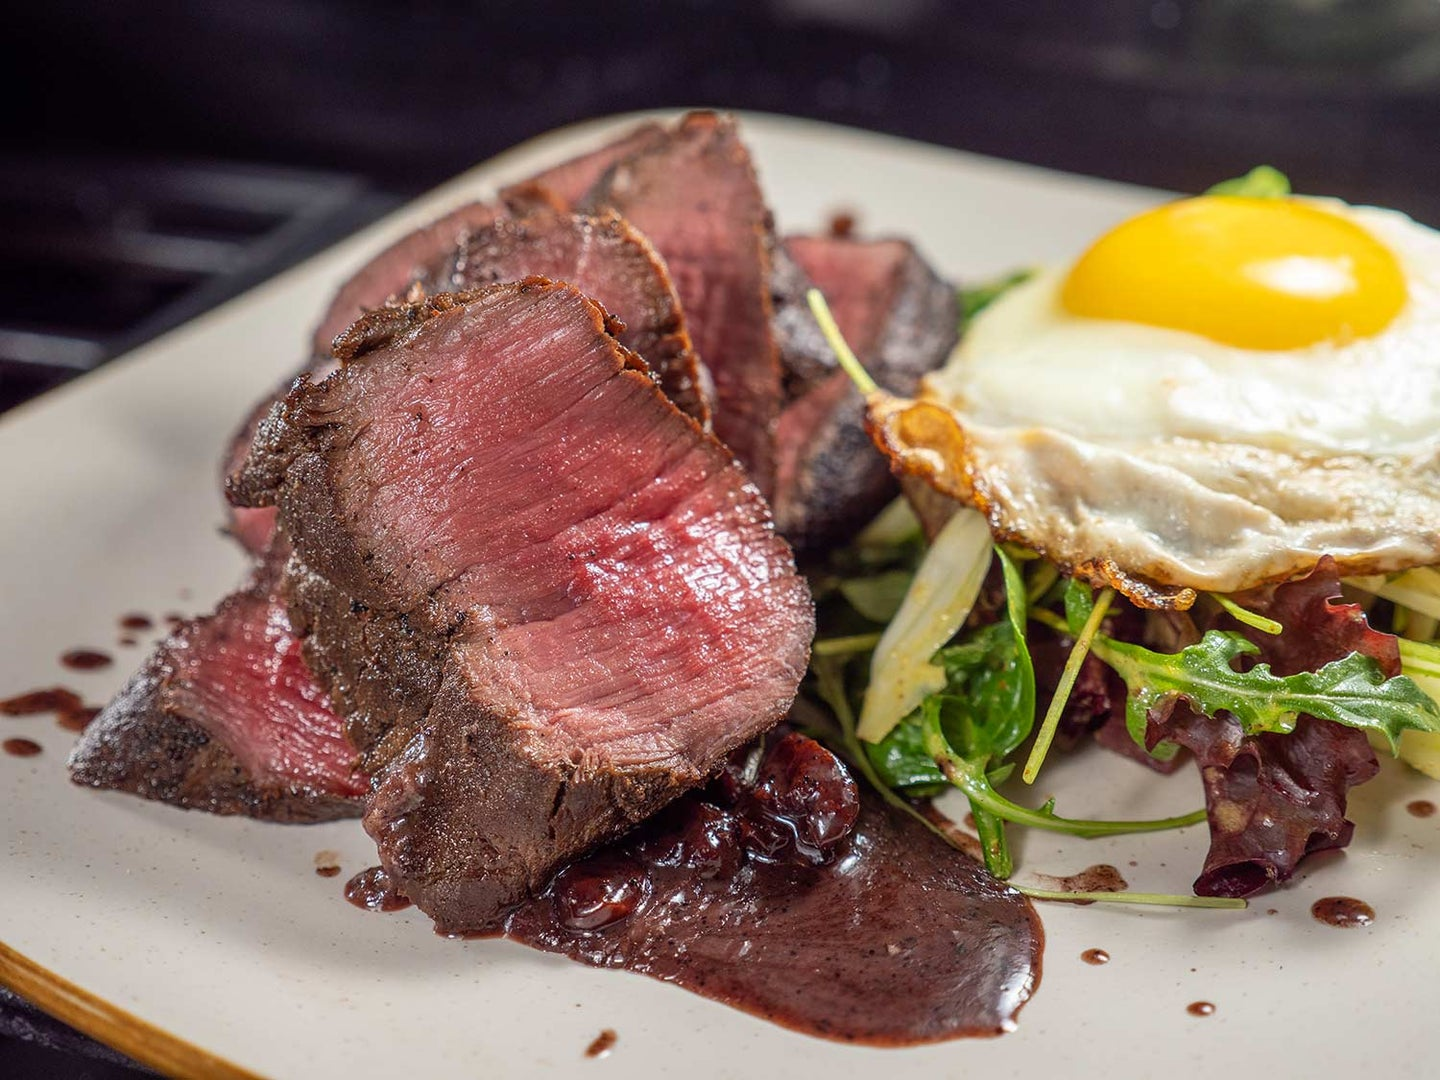 A perfectly cooked venison backstrap with a dried cherry reduction, arugula salad, and a fried egg.